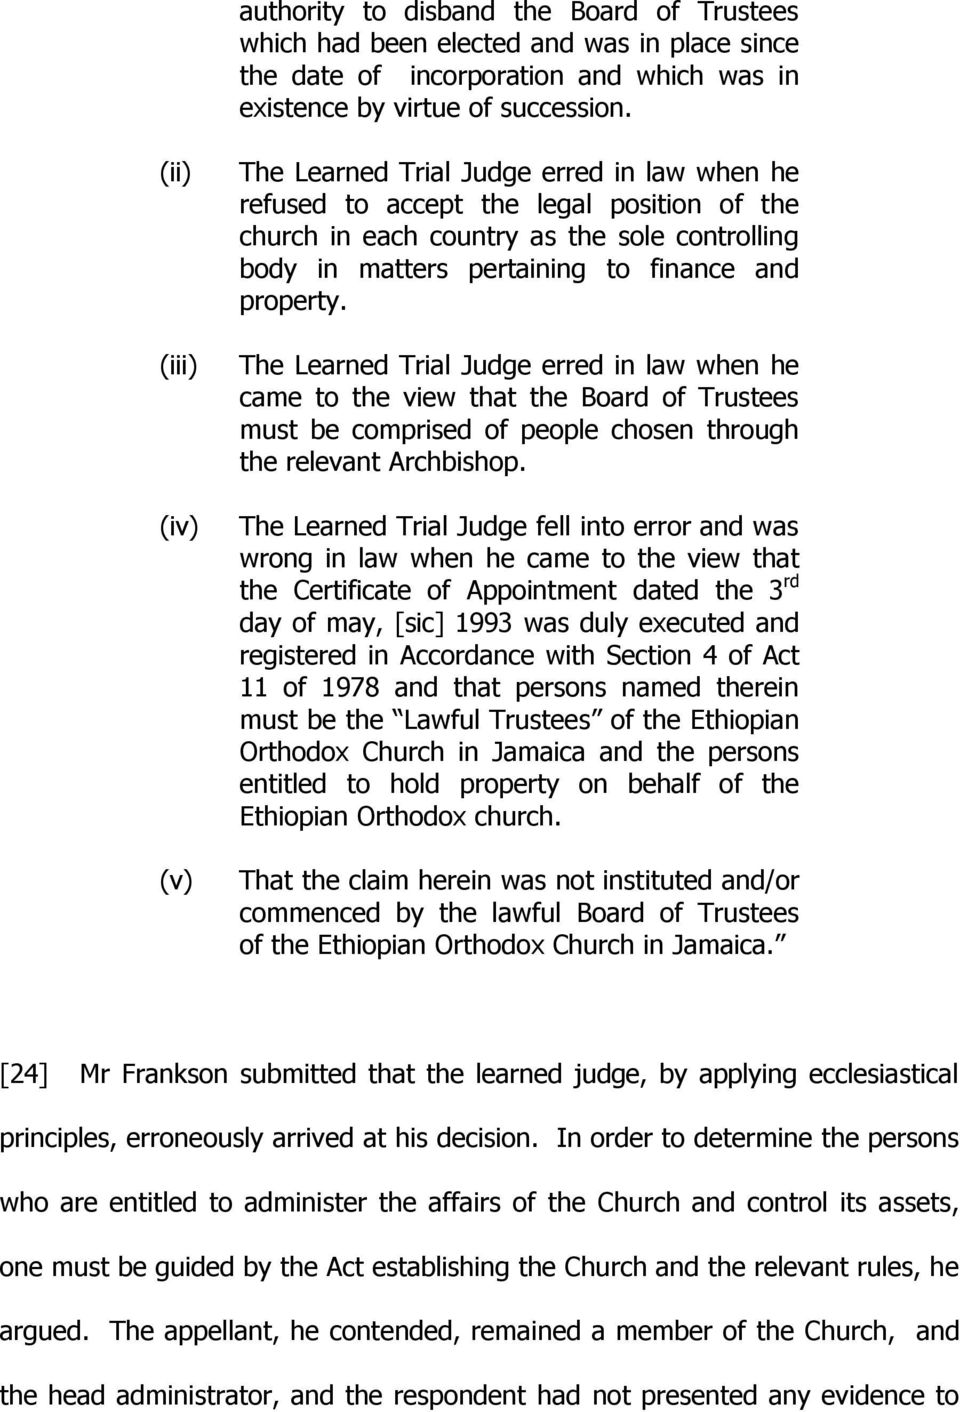 property. The Learned Trial Judge erred in law when he came to the view that the Board of Trustees must be comprised of people chosen through the relevant Archbishop.